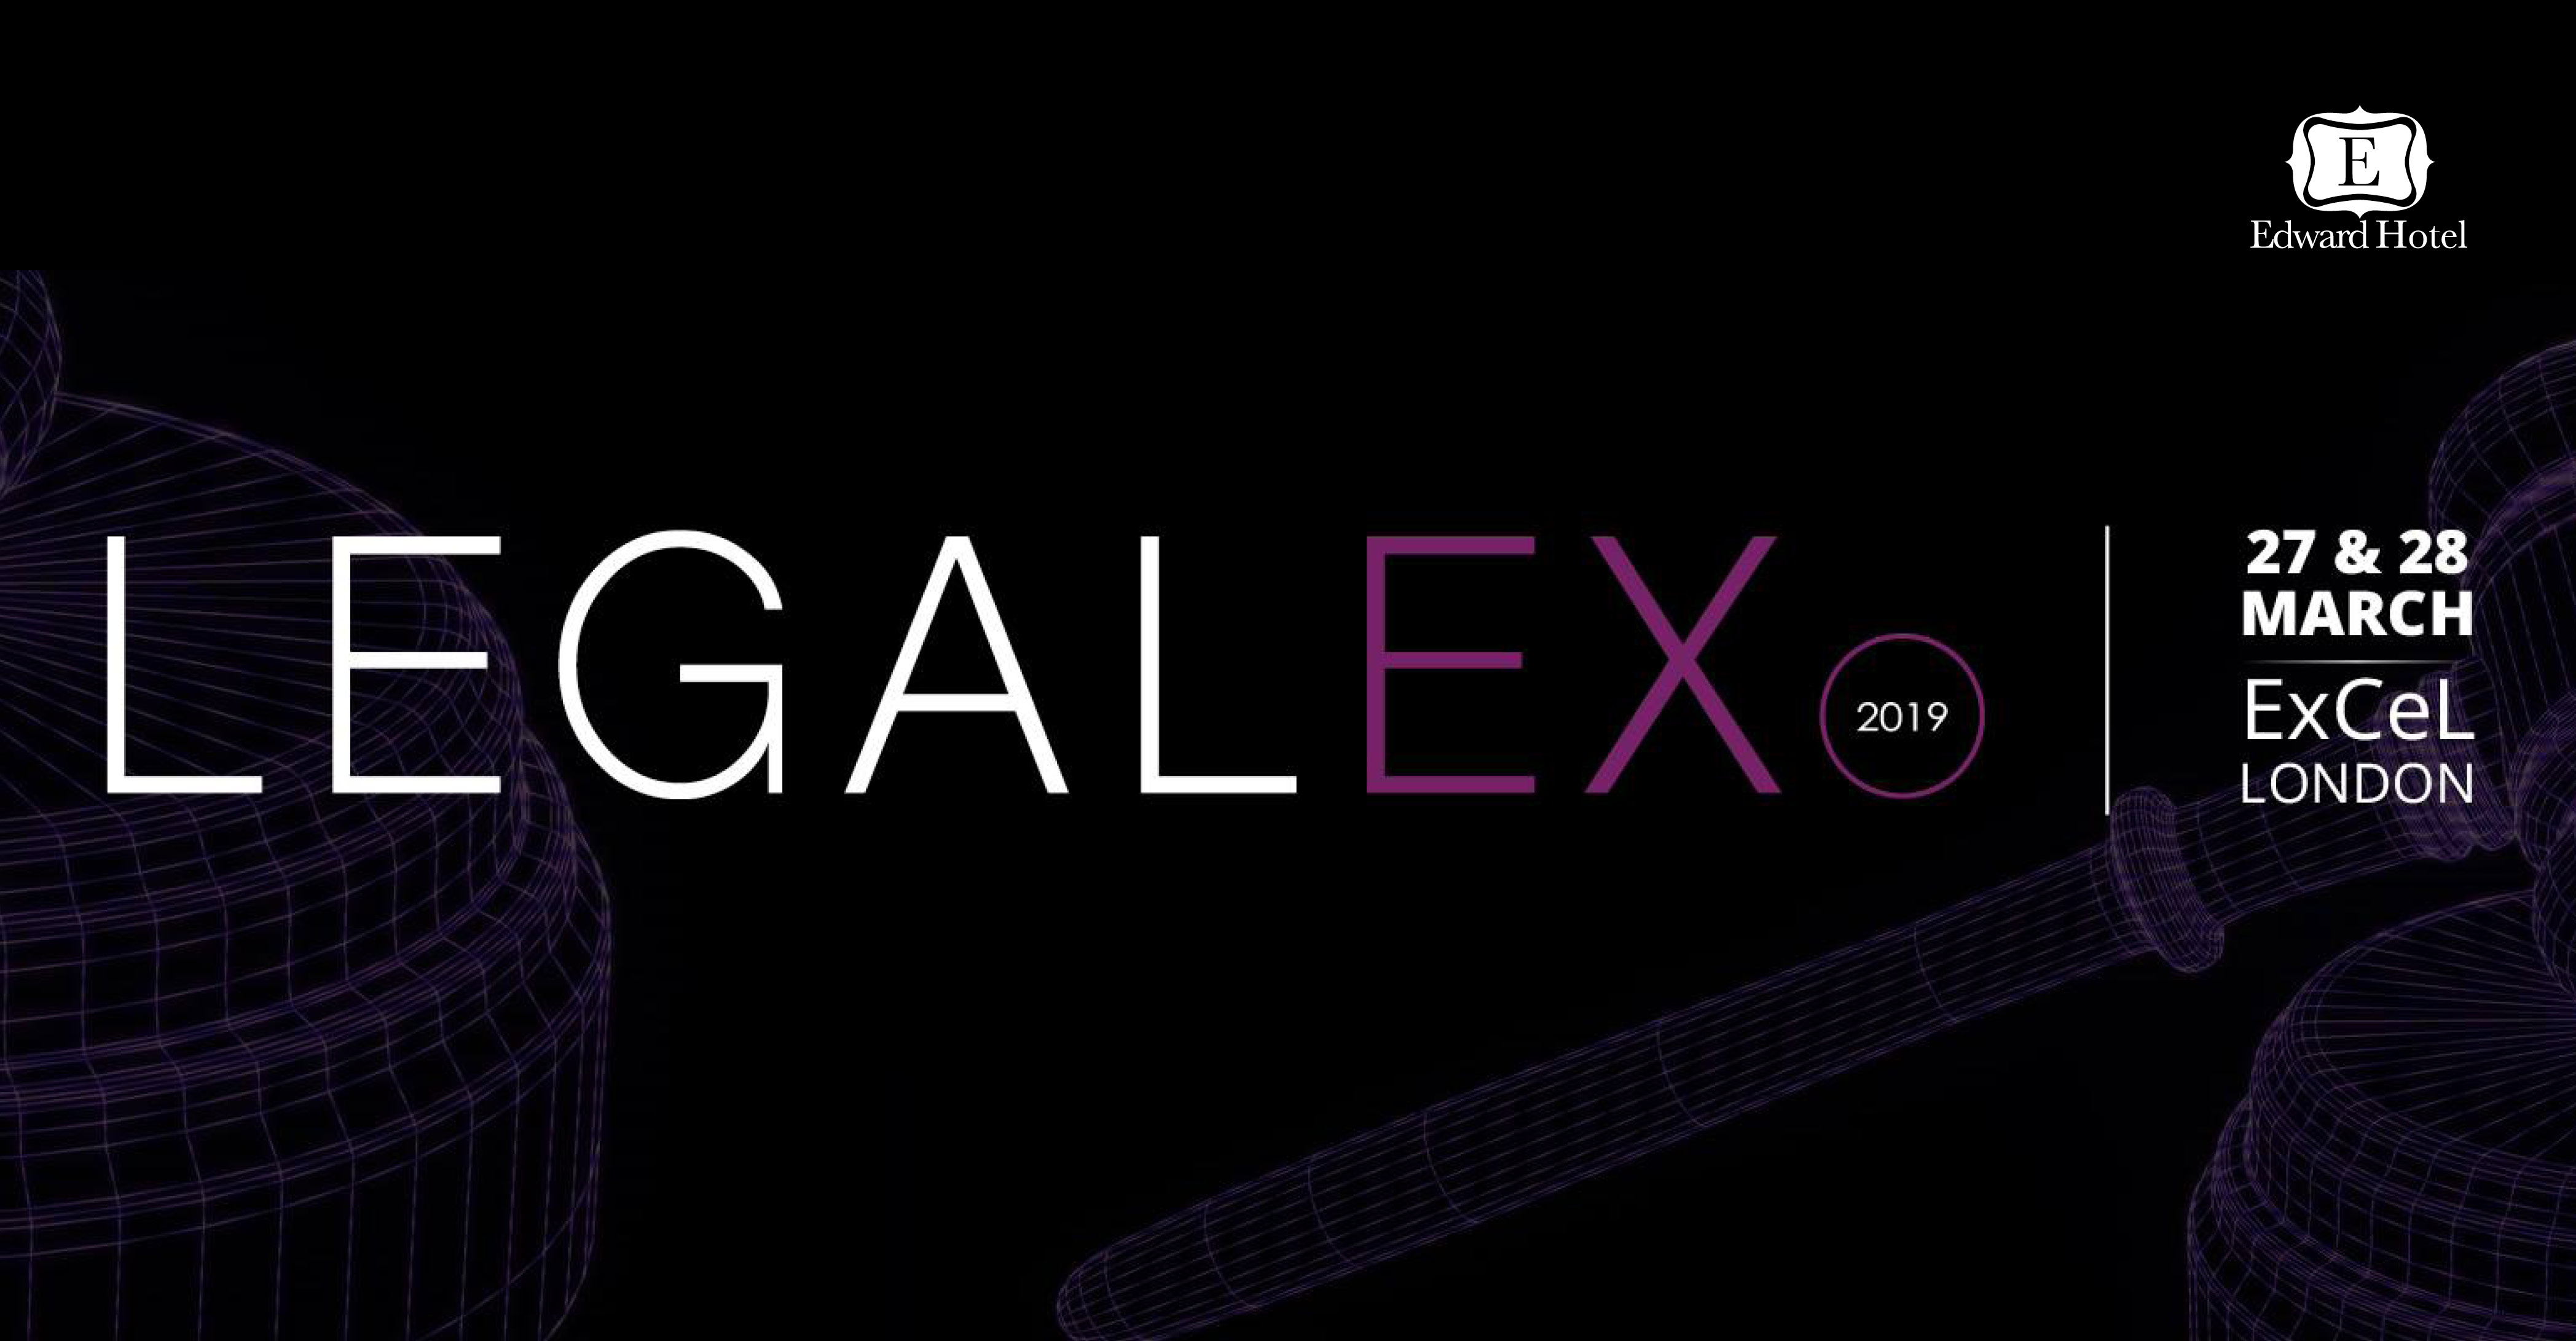 Legal Cyber Security Expo – Excel London